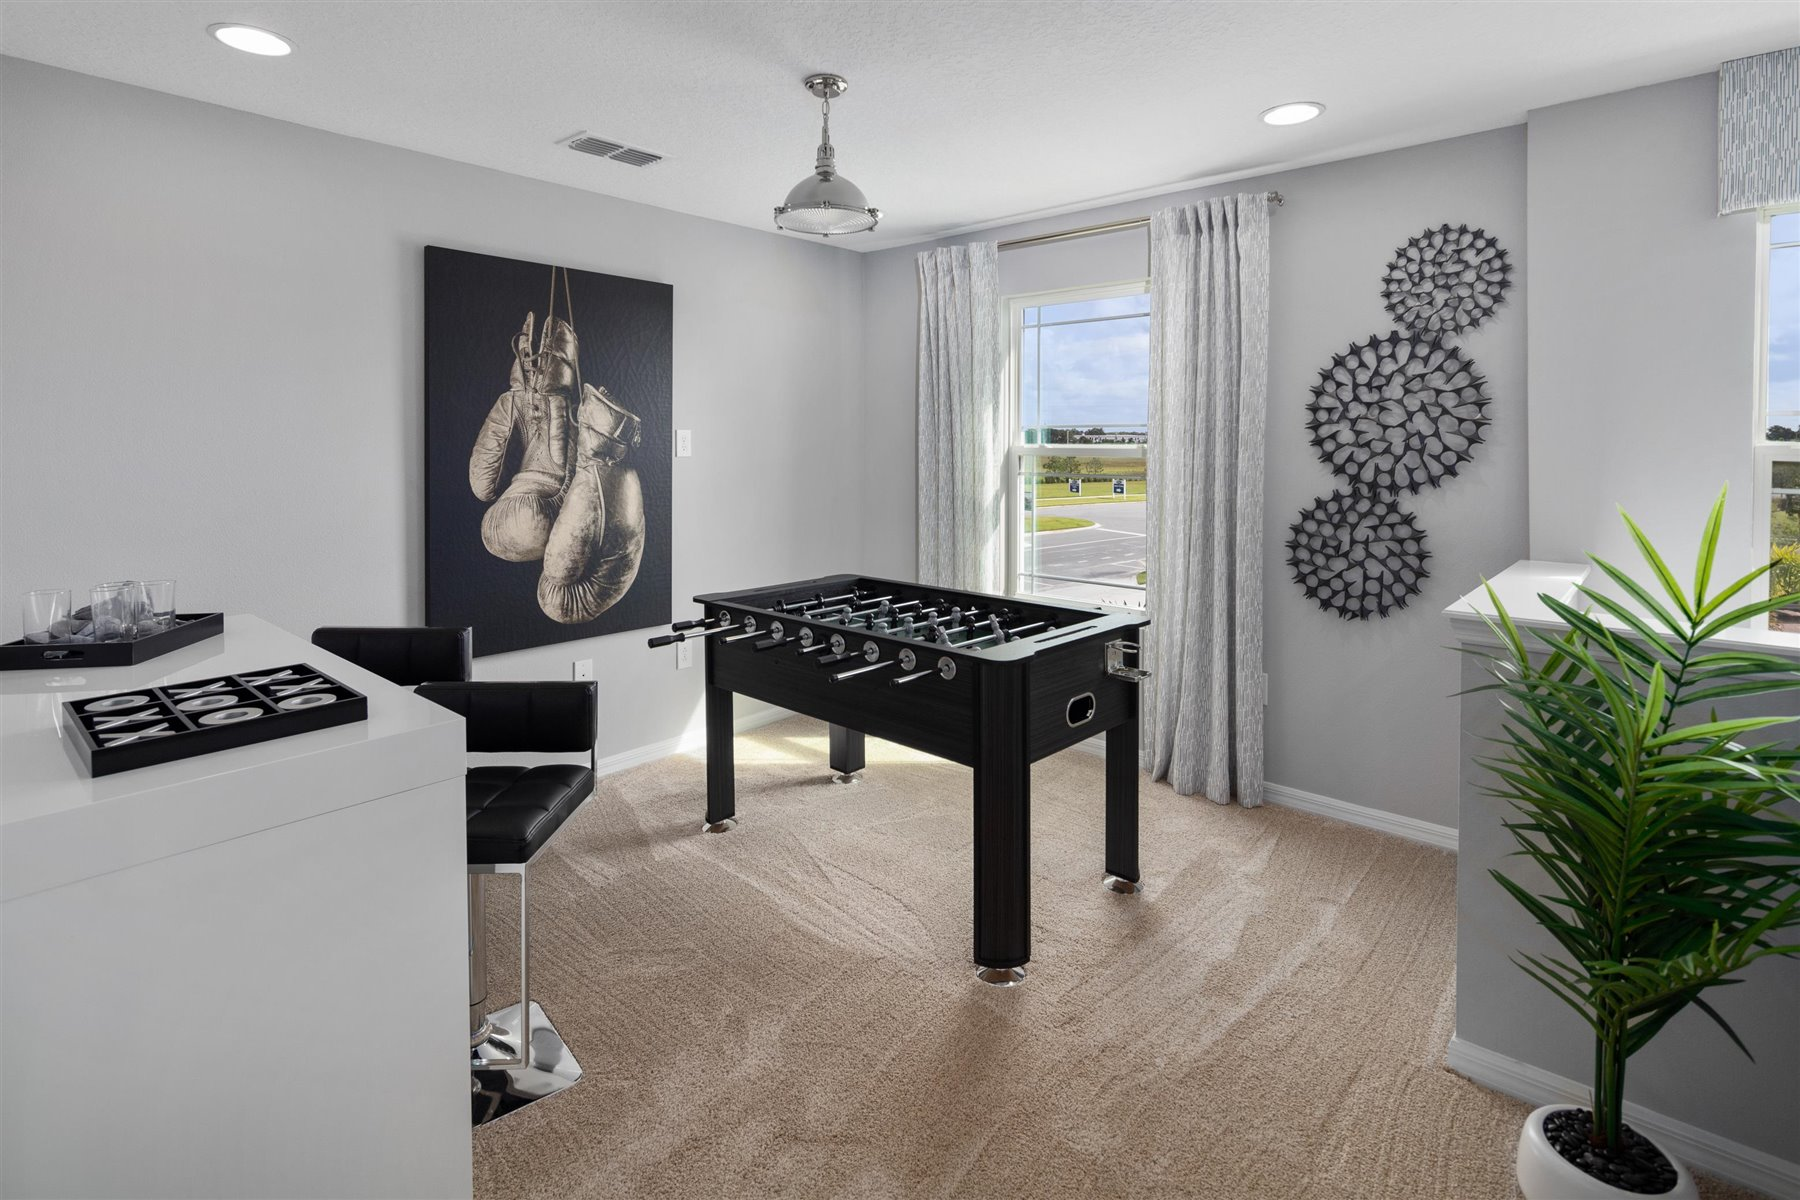 Marabel III Plan Recreation Room at Randal Walk in Orlando Florida by Mattamy Homes